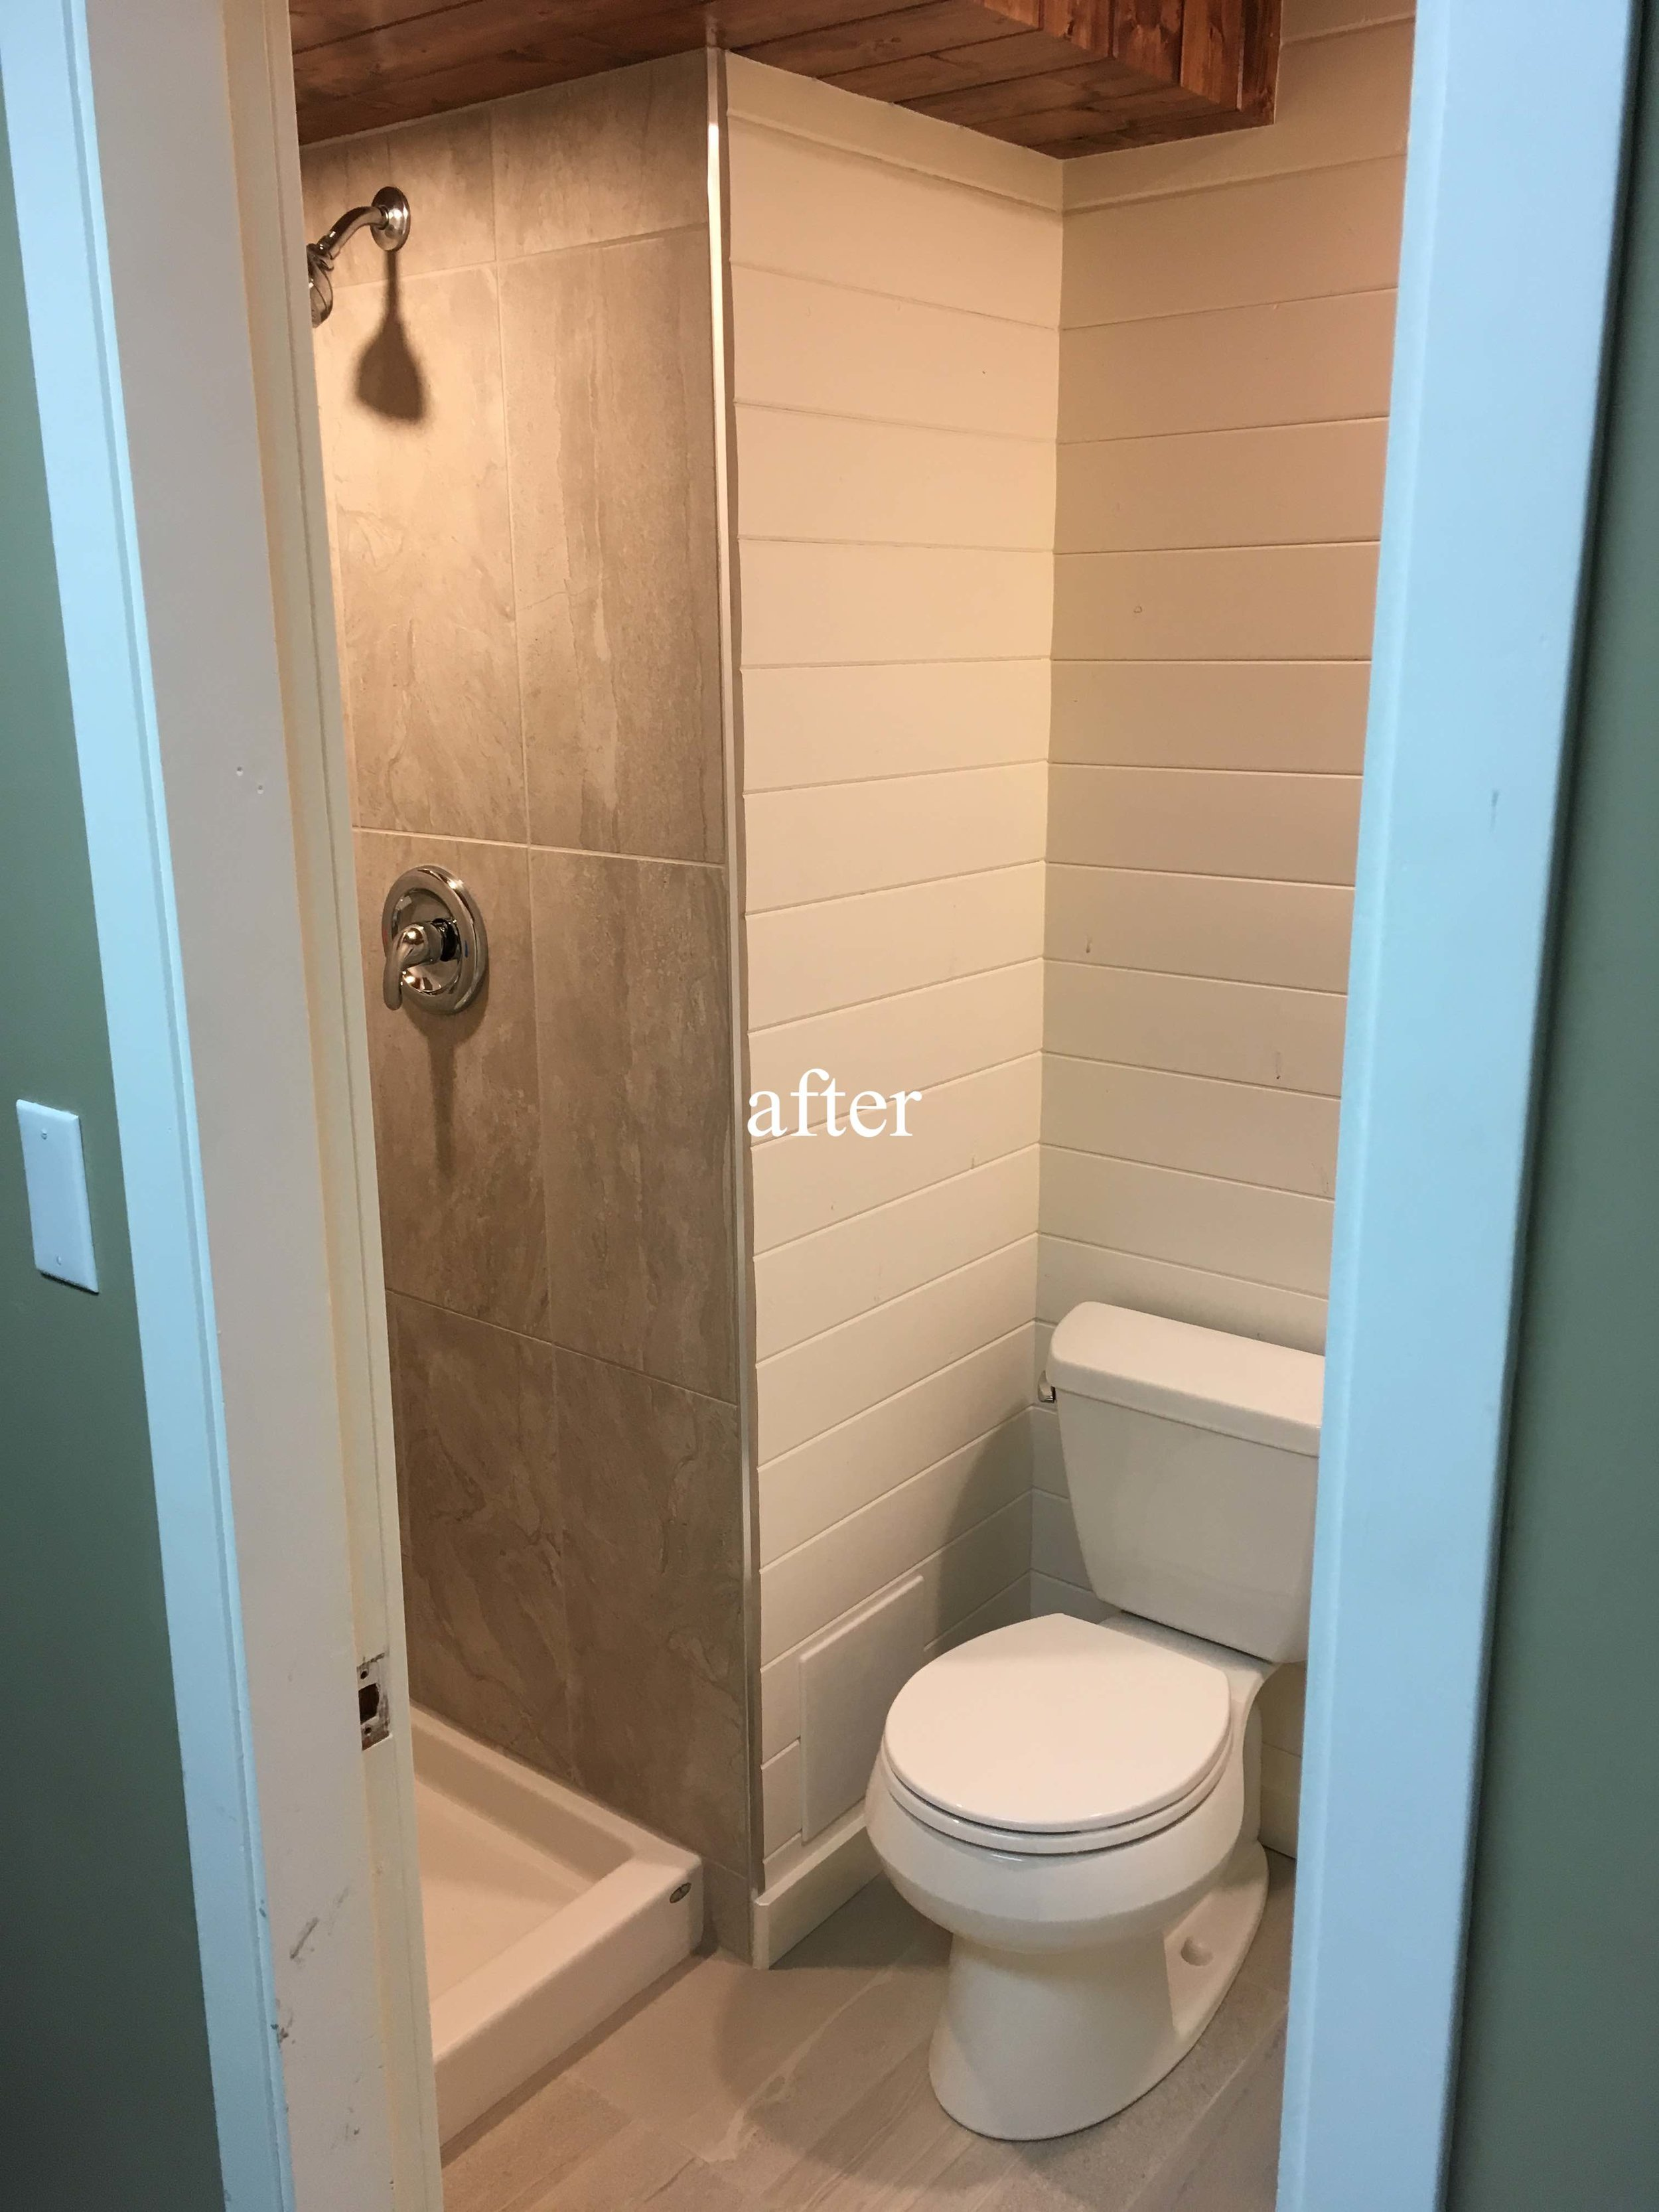 New bathroom, Kimberley, BC after picture.